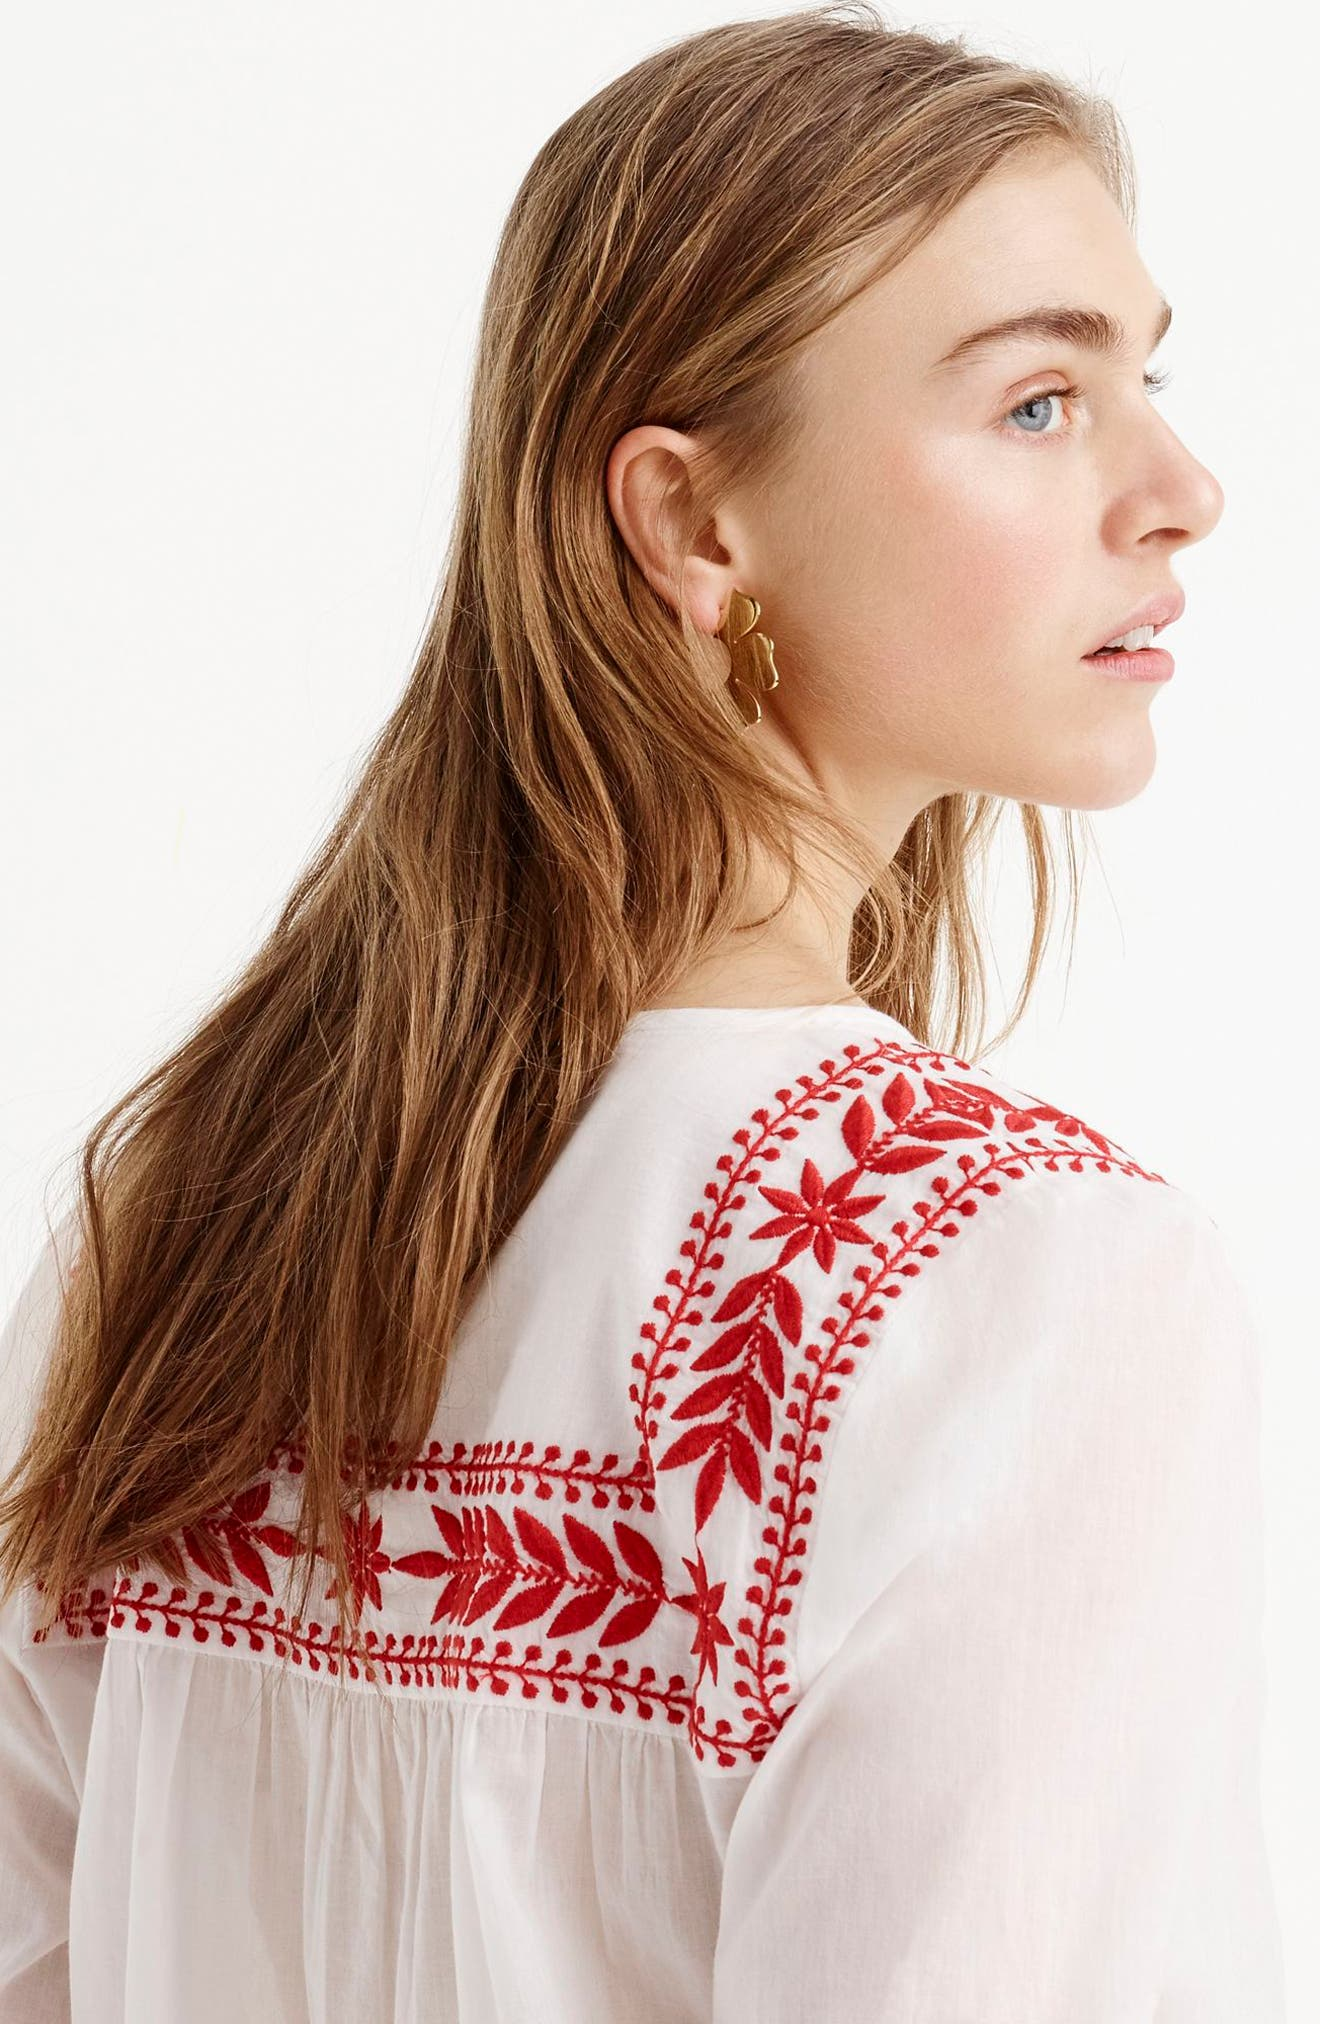 J.Crew Embroidered Semolina Top,                             Alternate thumbnail 2, color,                             White Red